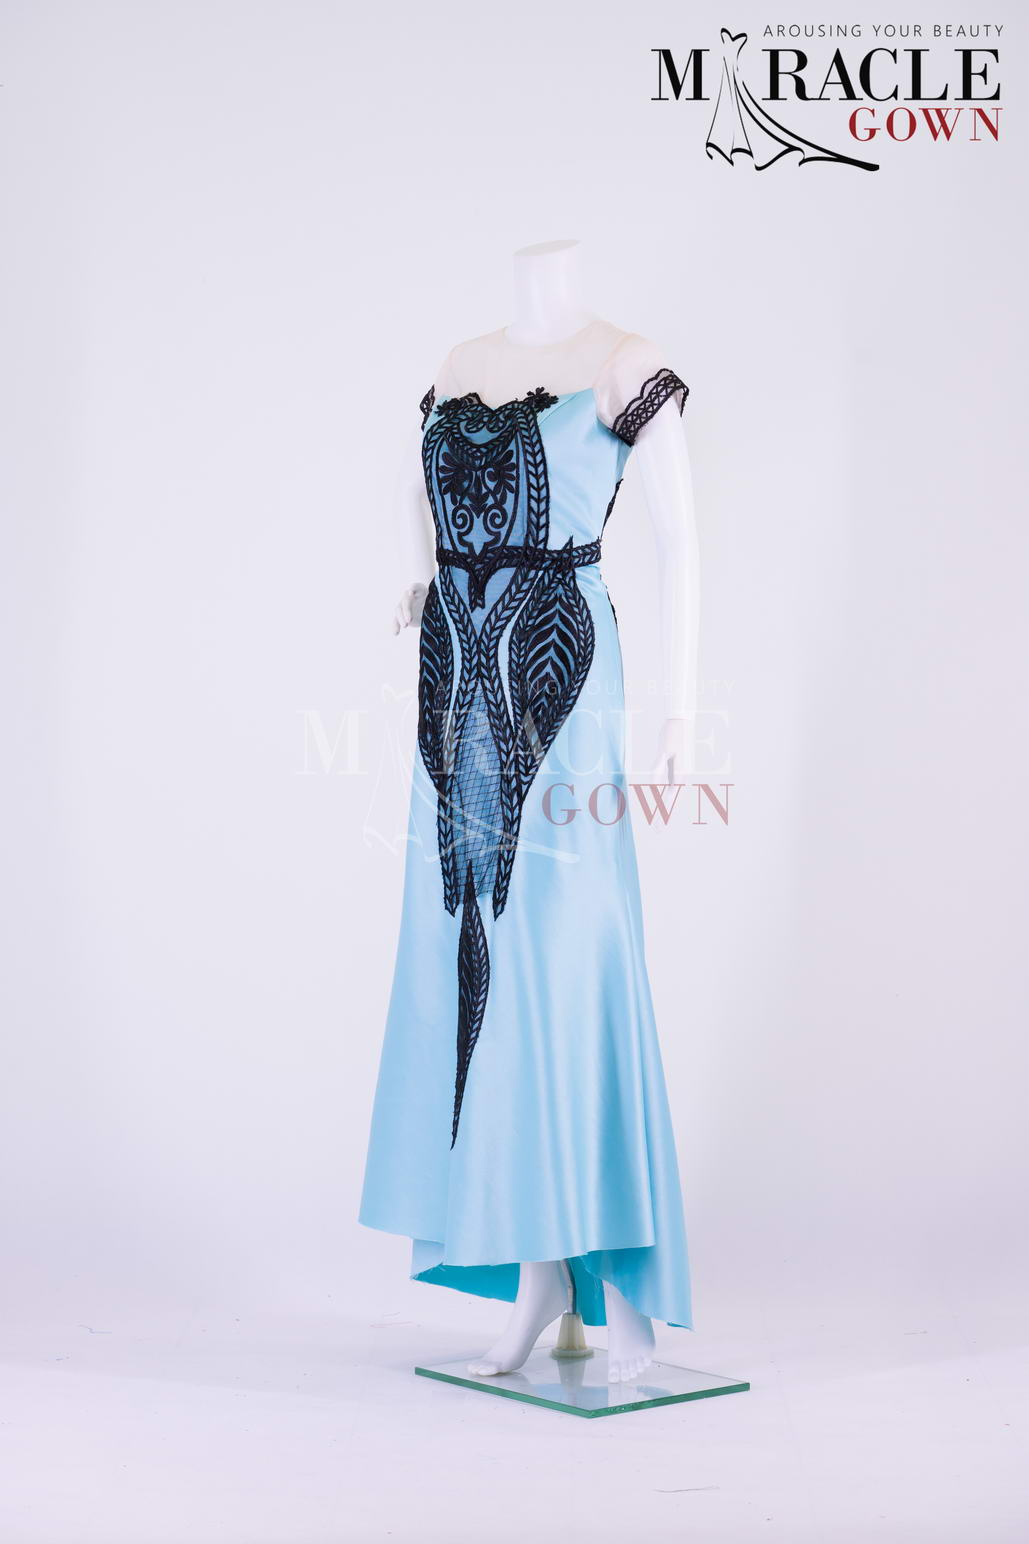 Sewa Gaun Surabaya - Miracle Gown - Blue Sky Evening Gown With Black Embellishment